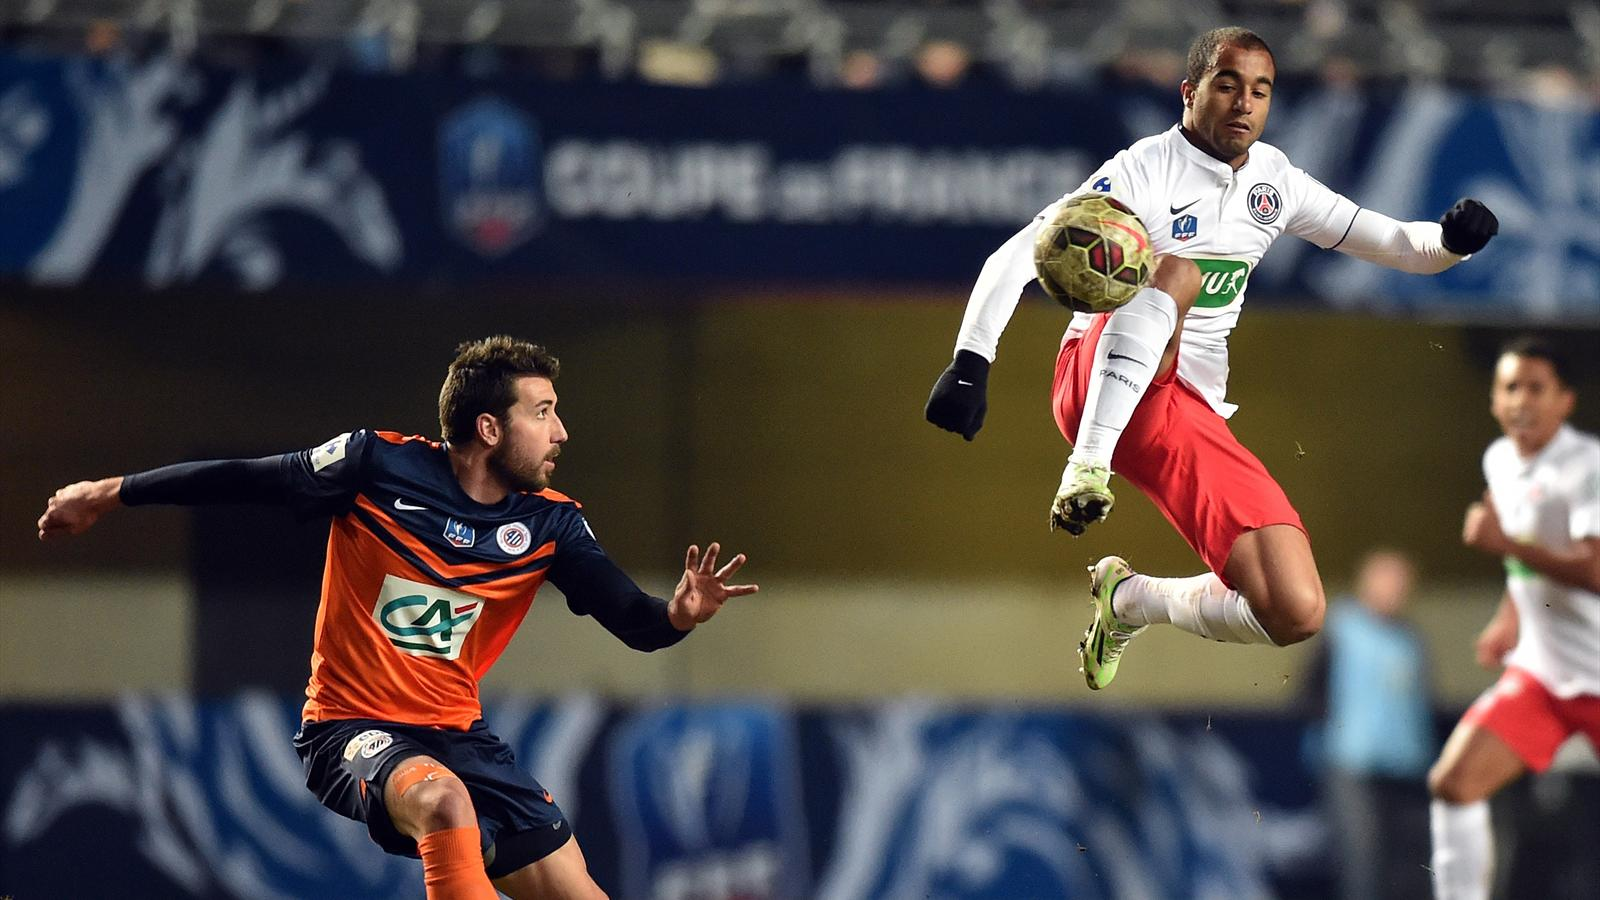 En direct live montpellier psg coupe de france 5 janvier 2015 eurosport - Coupe de france eurosport ...